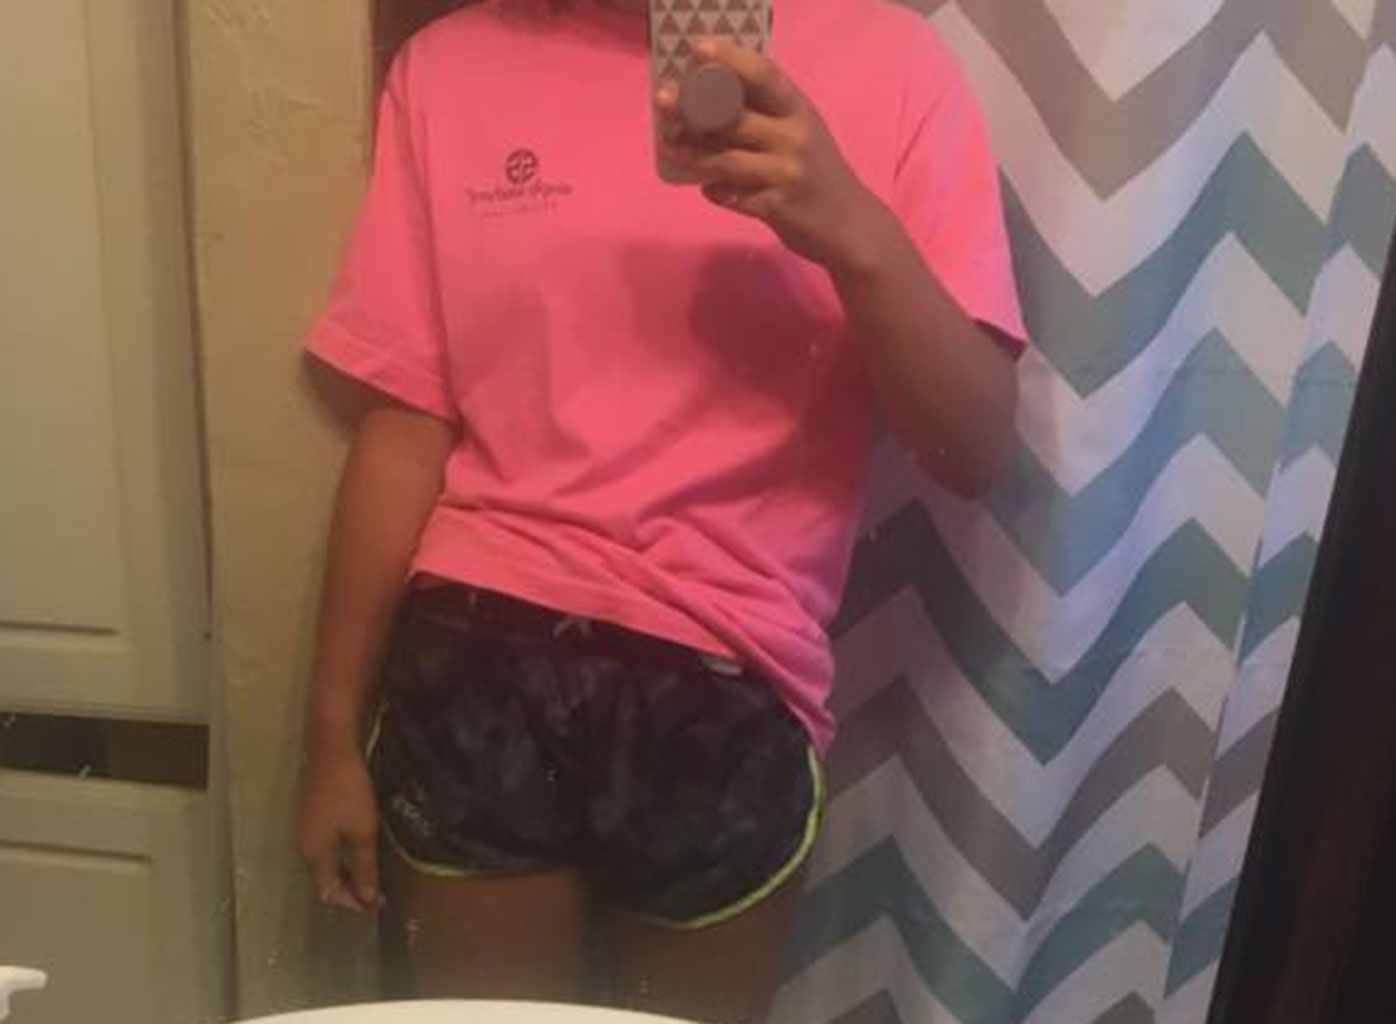 Madison Herber says she was  verbally abused for this outfit